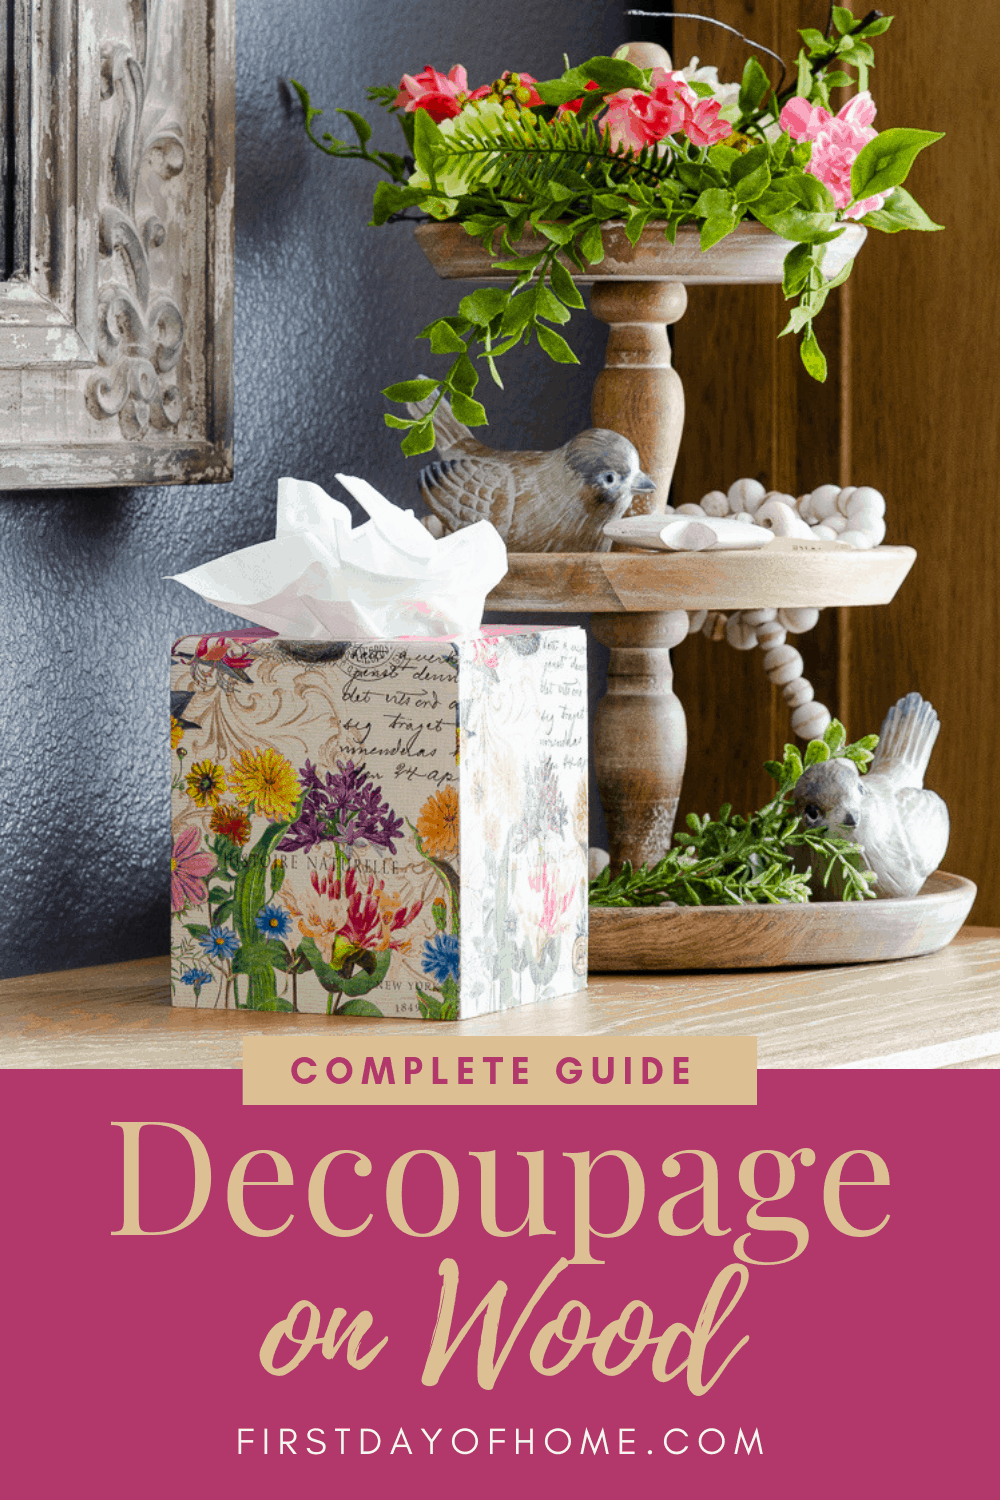 Complete guide for decoupage on wood